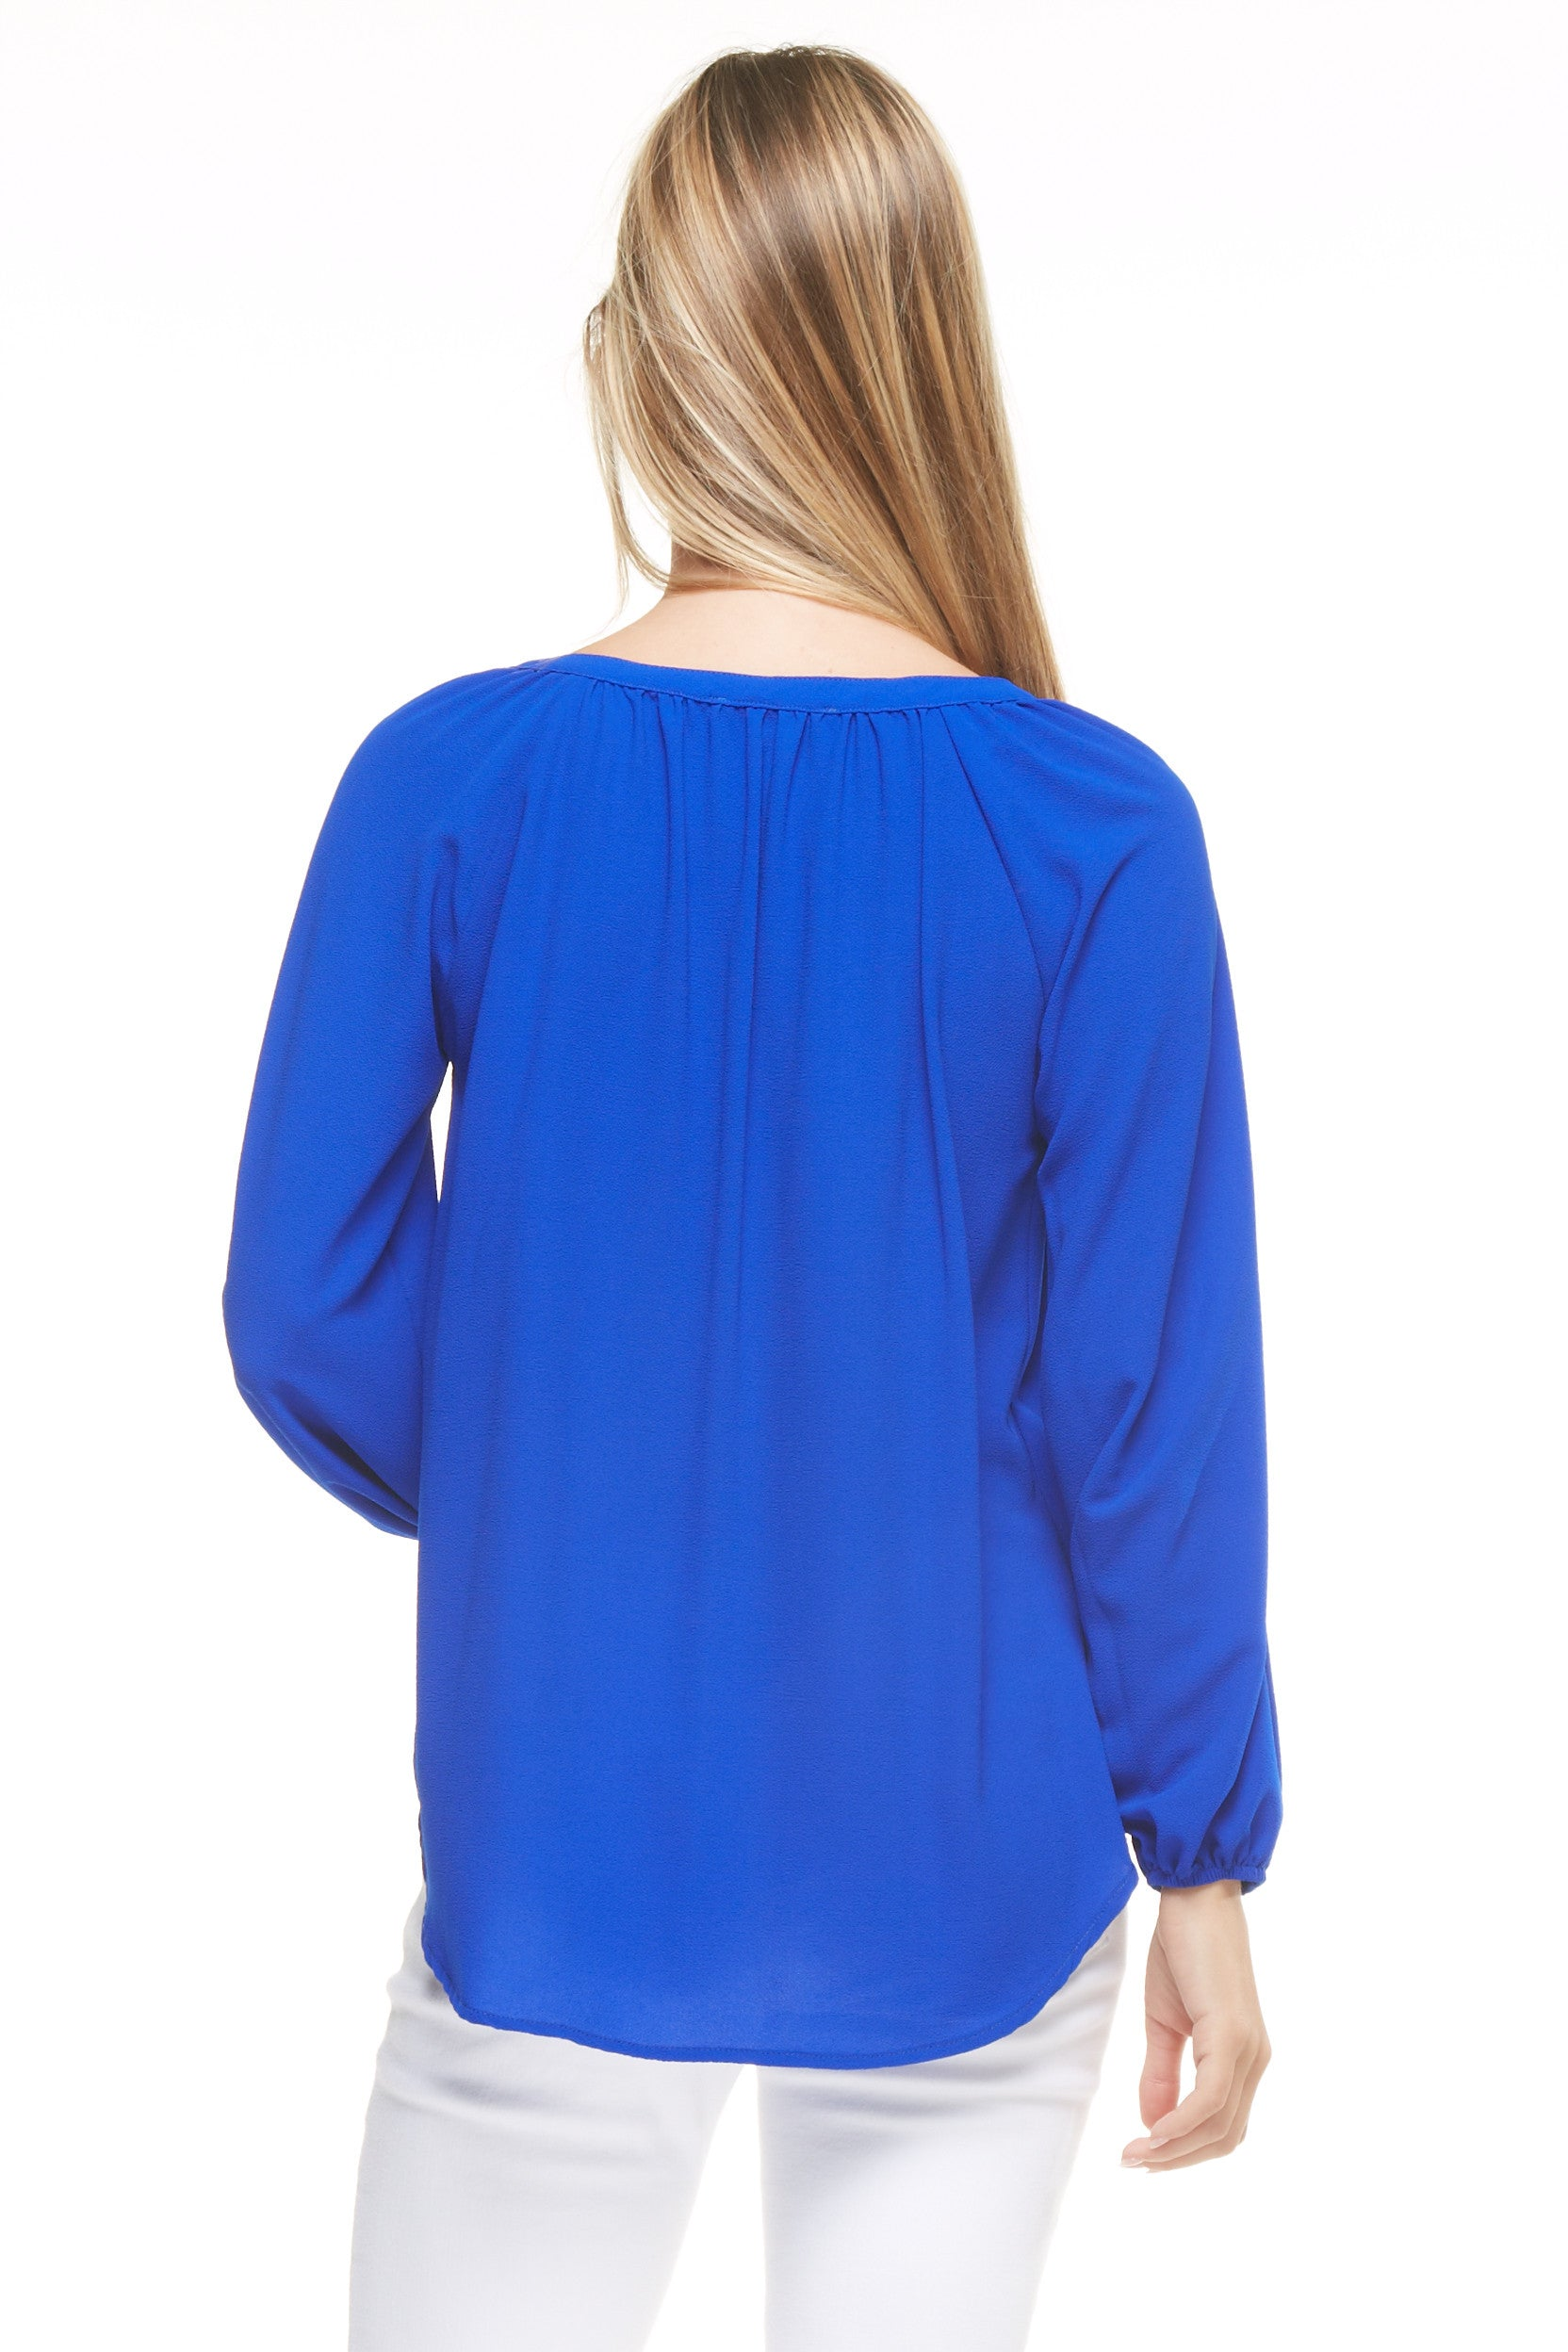 Button Front Blouse, Tops